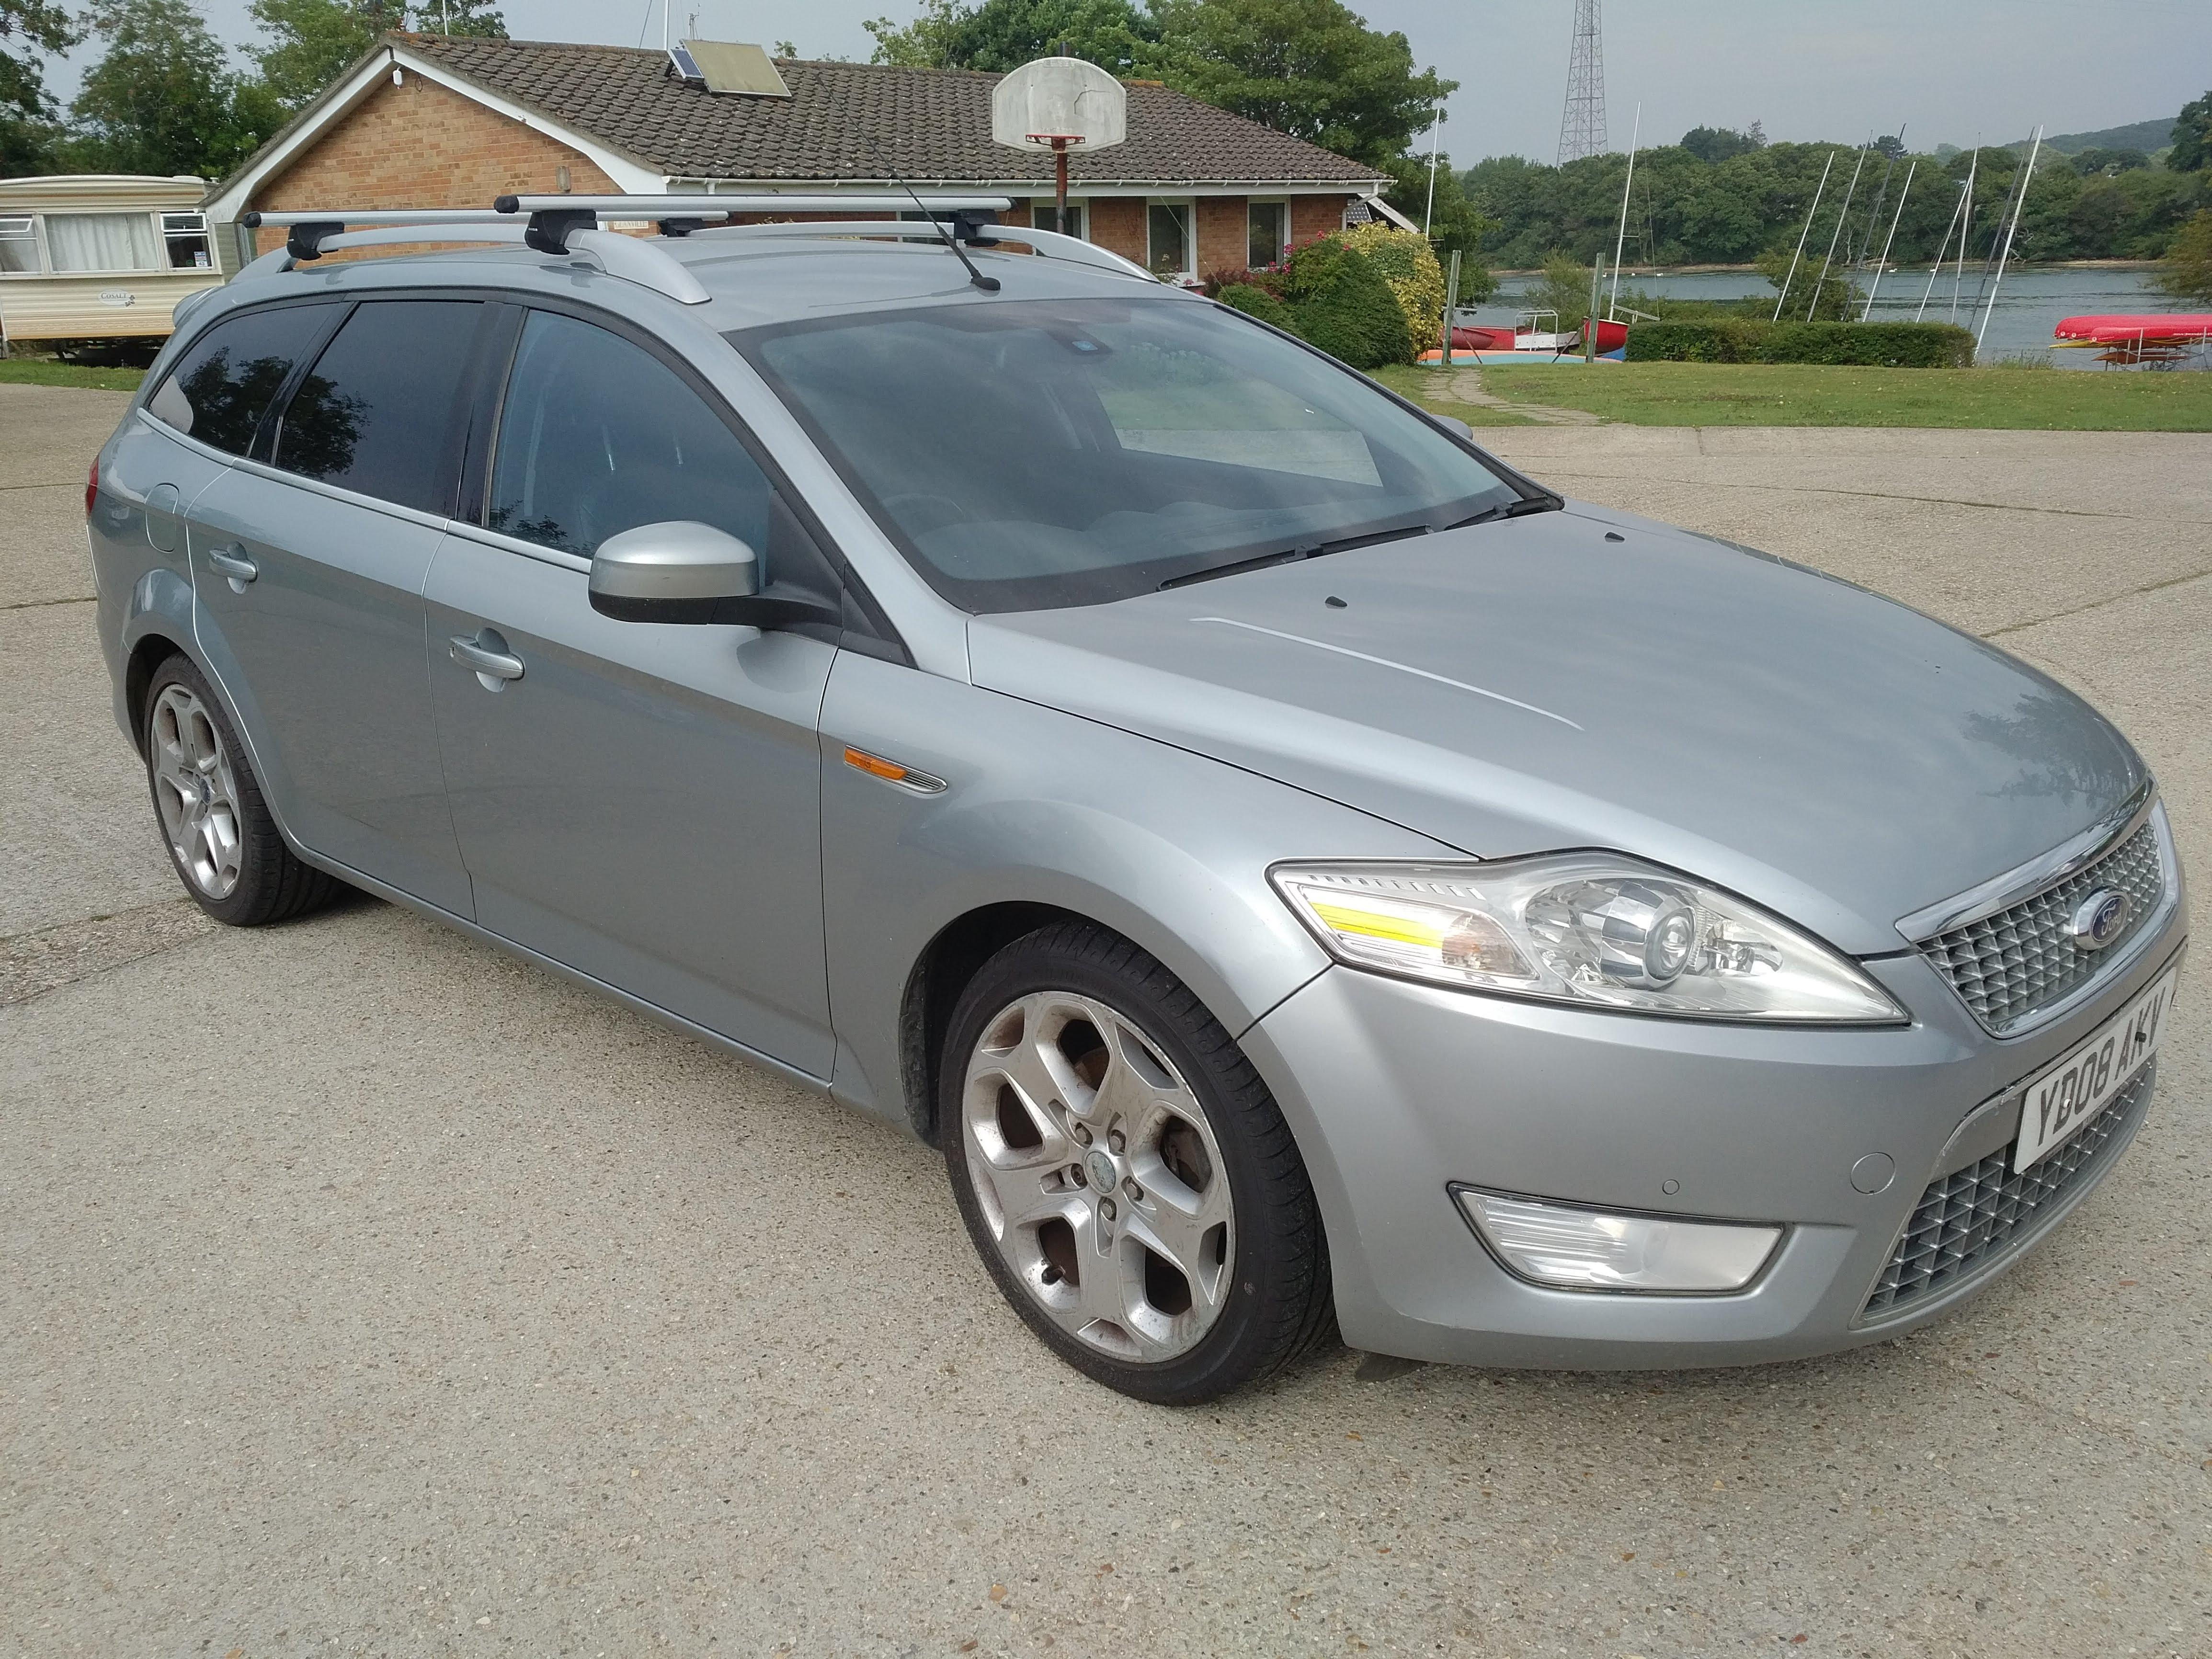 Ford Mondeo 2008 in Newport Isle of Wight - Expired | Wightbay